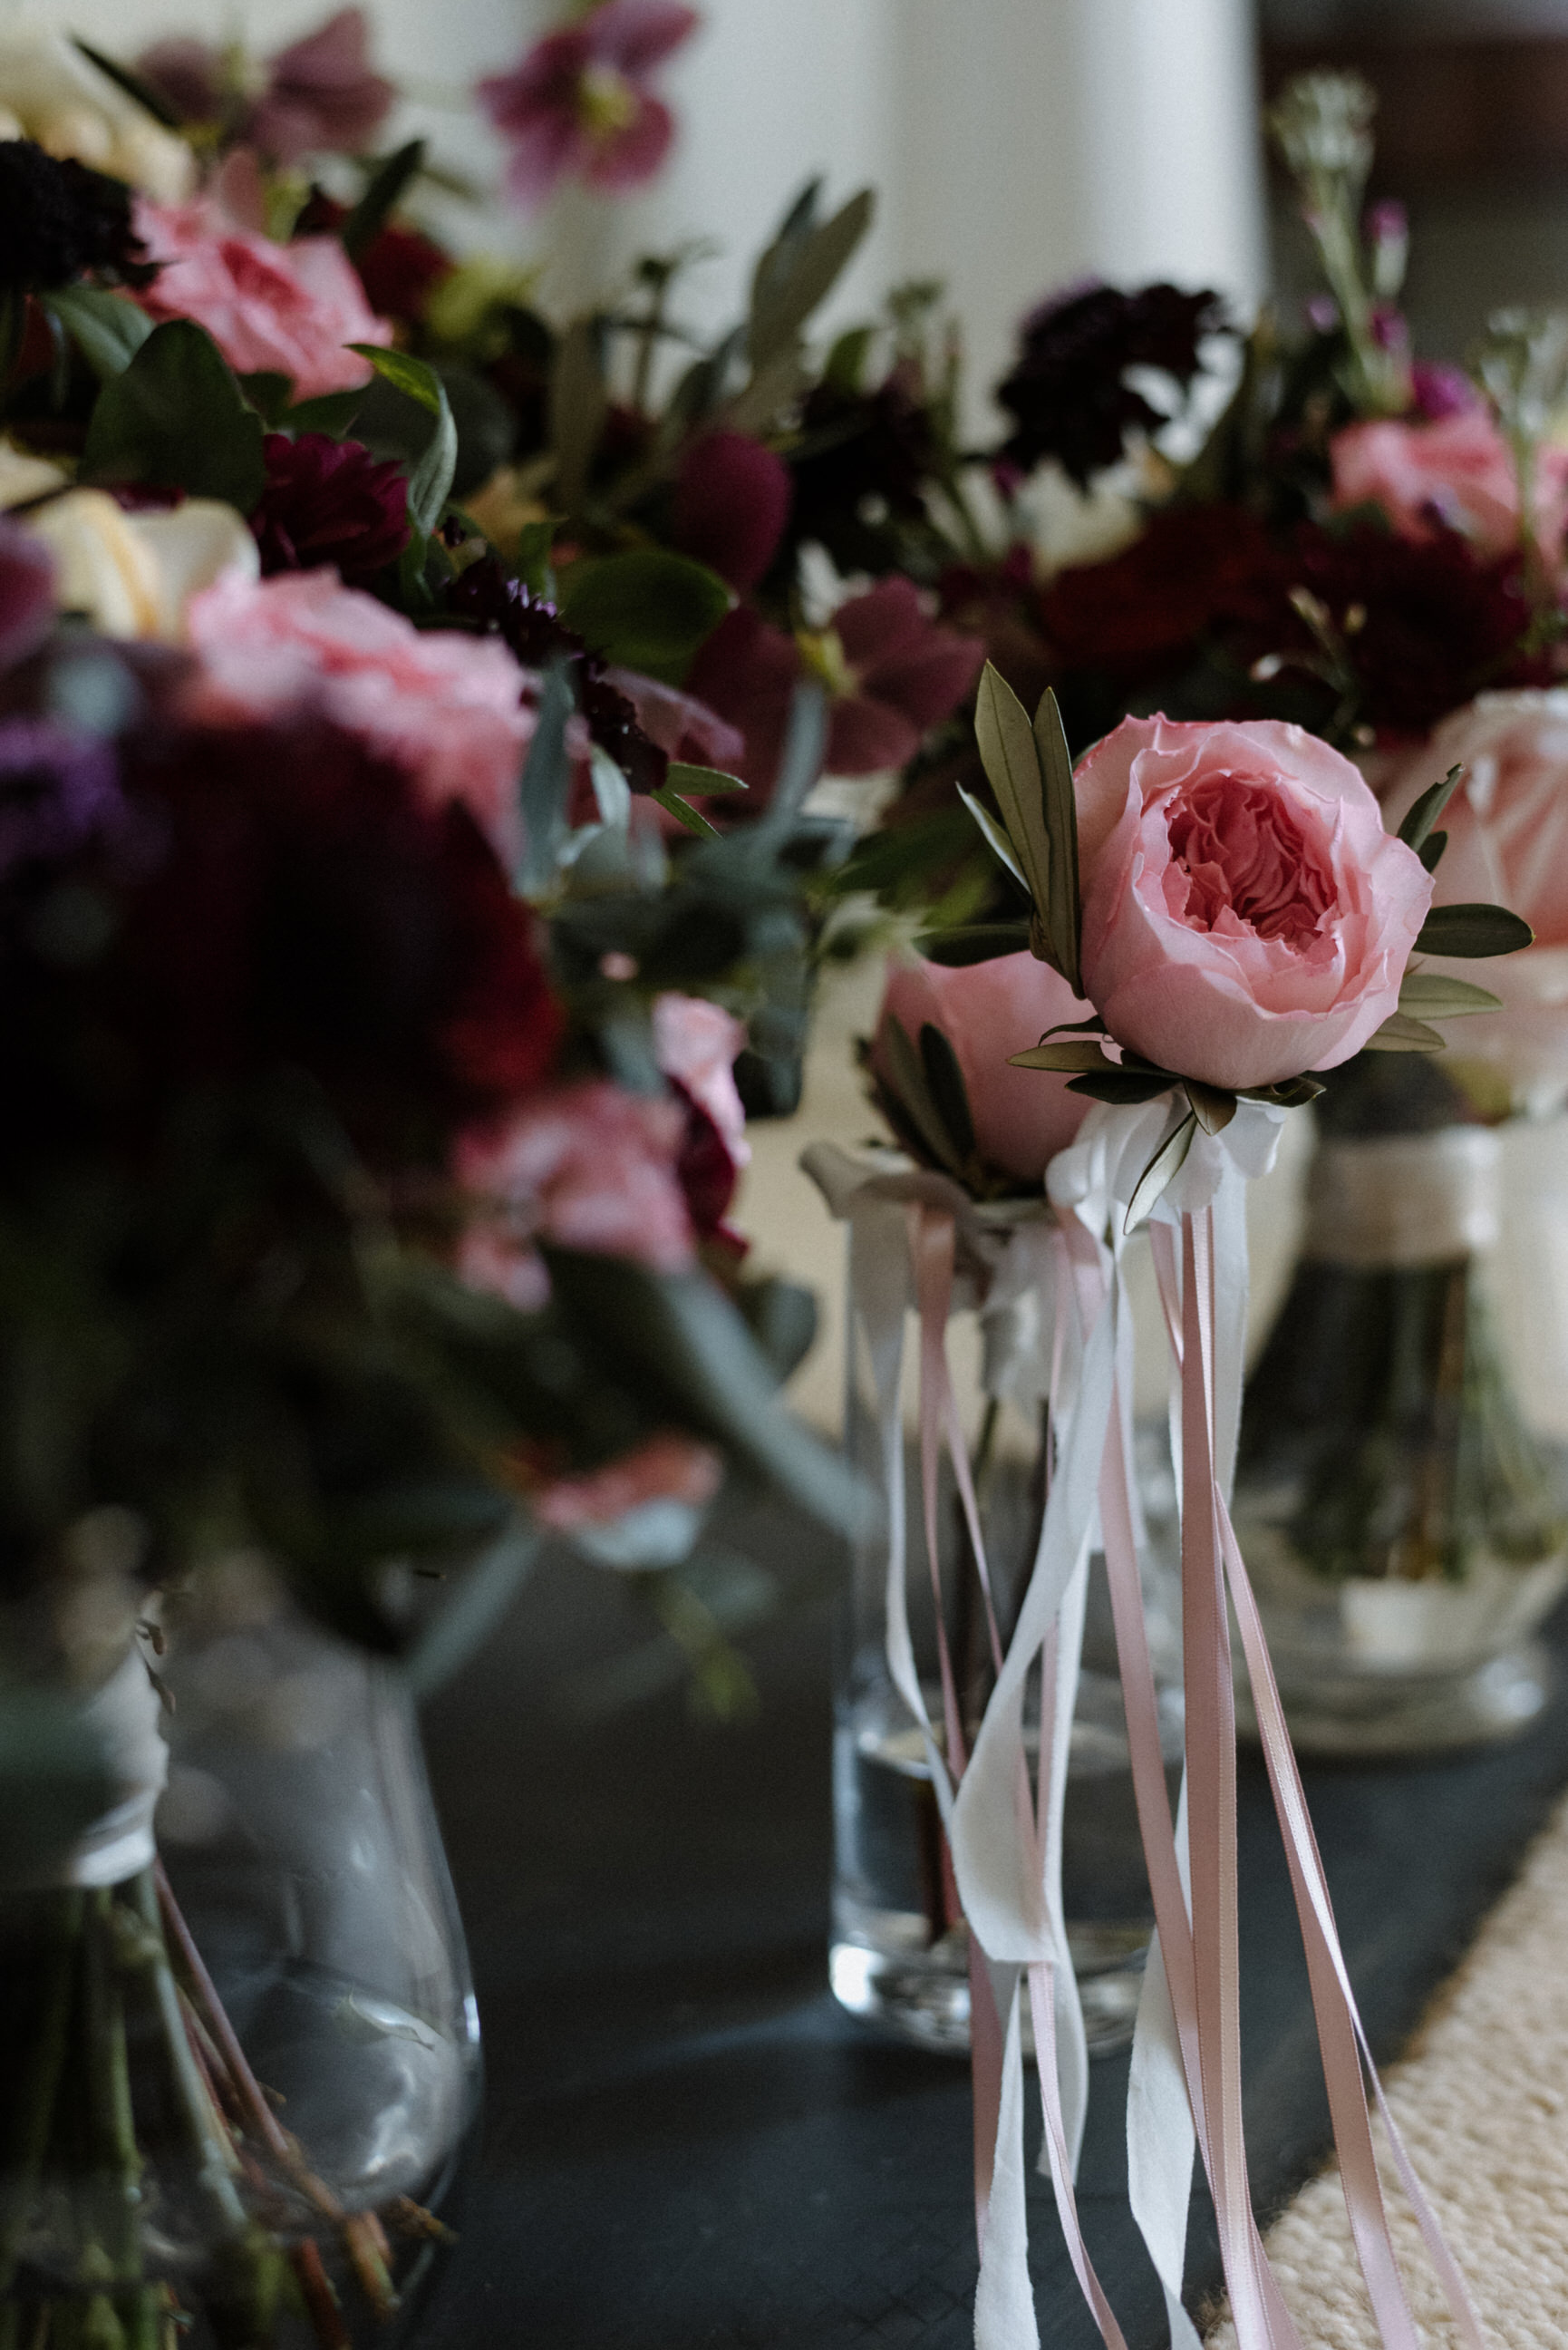 The Rosehip & berry florals